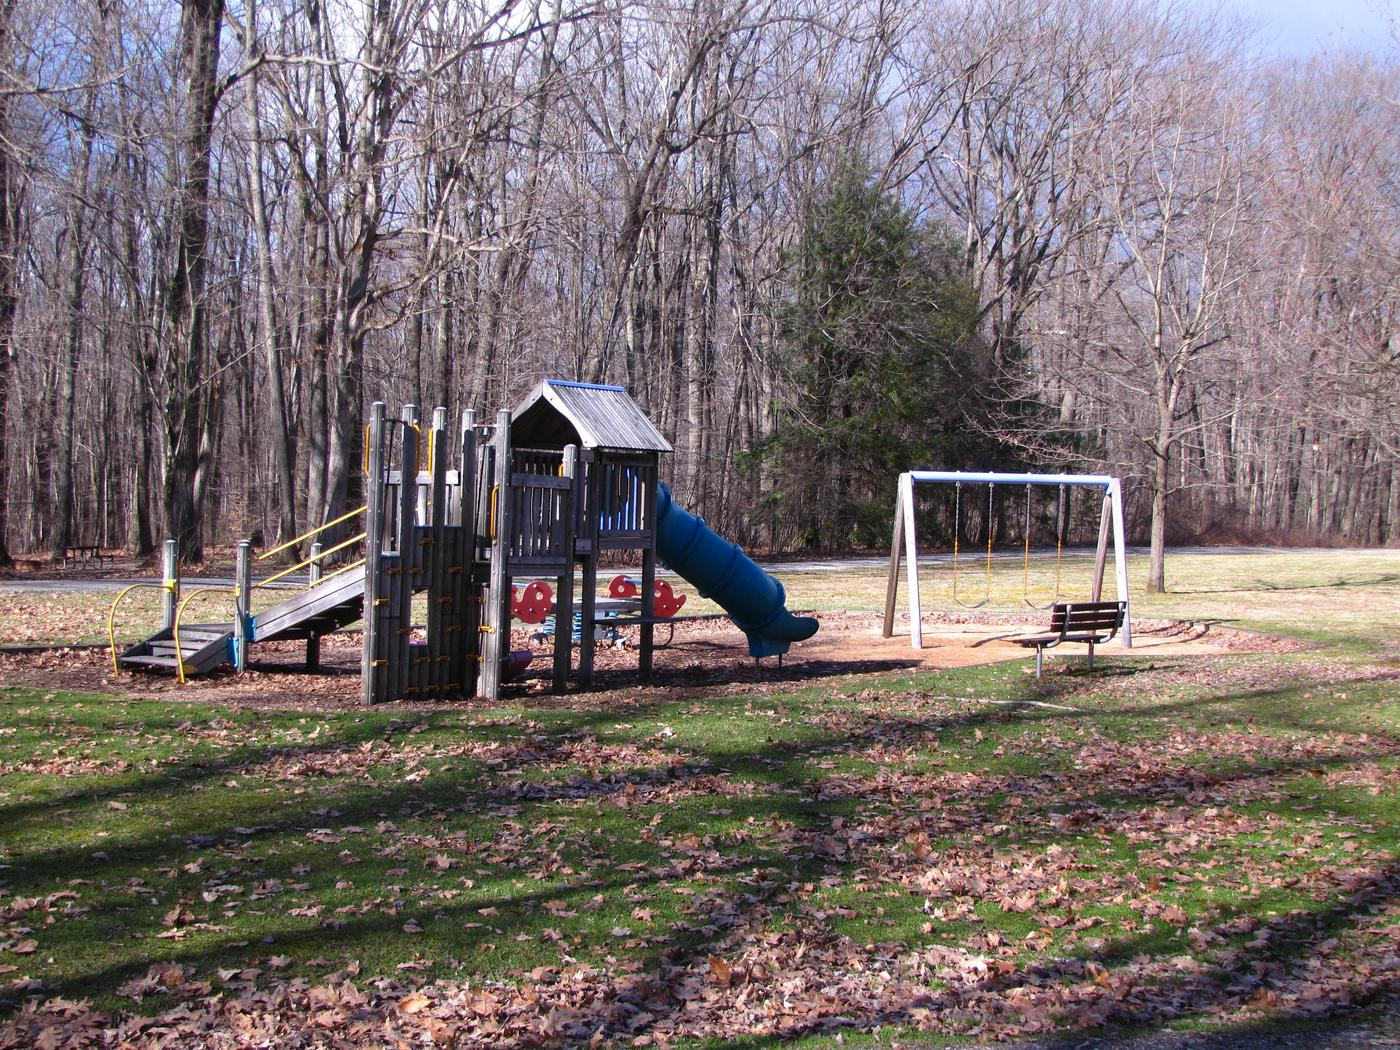 Hearts Content Recreation Area: Playground